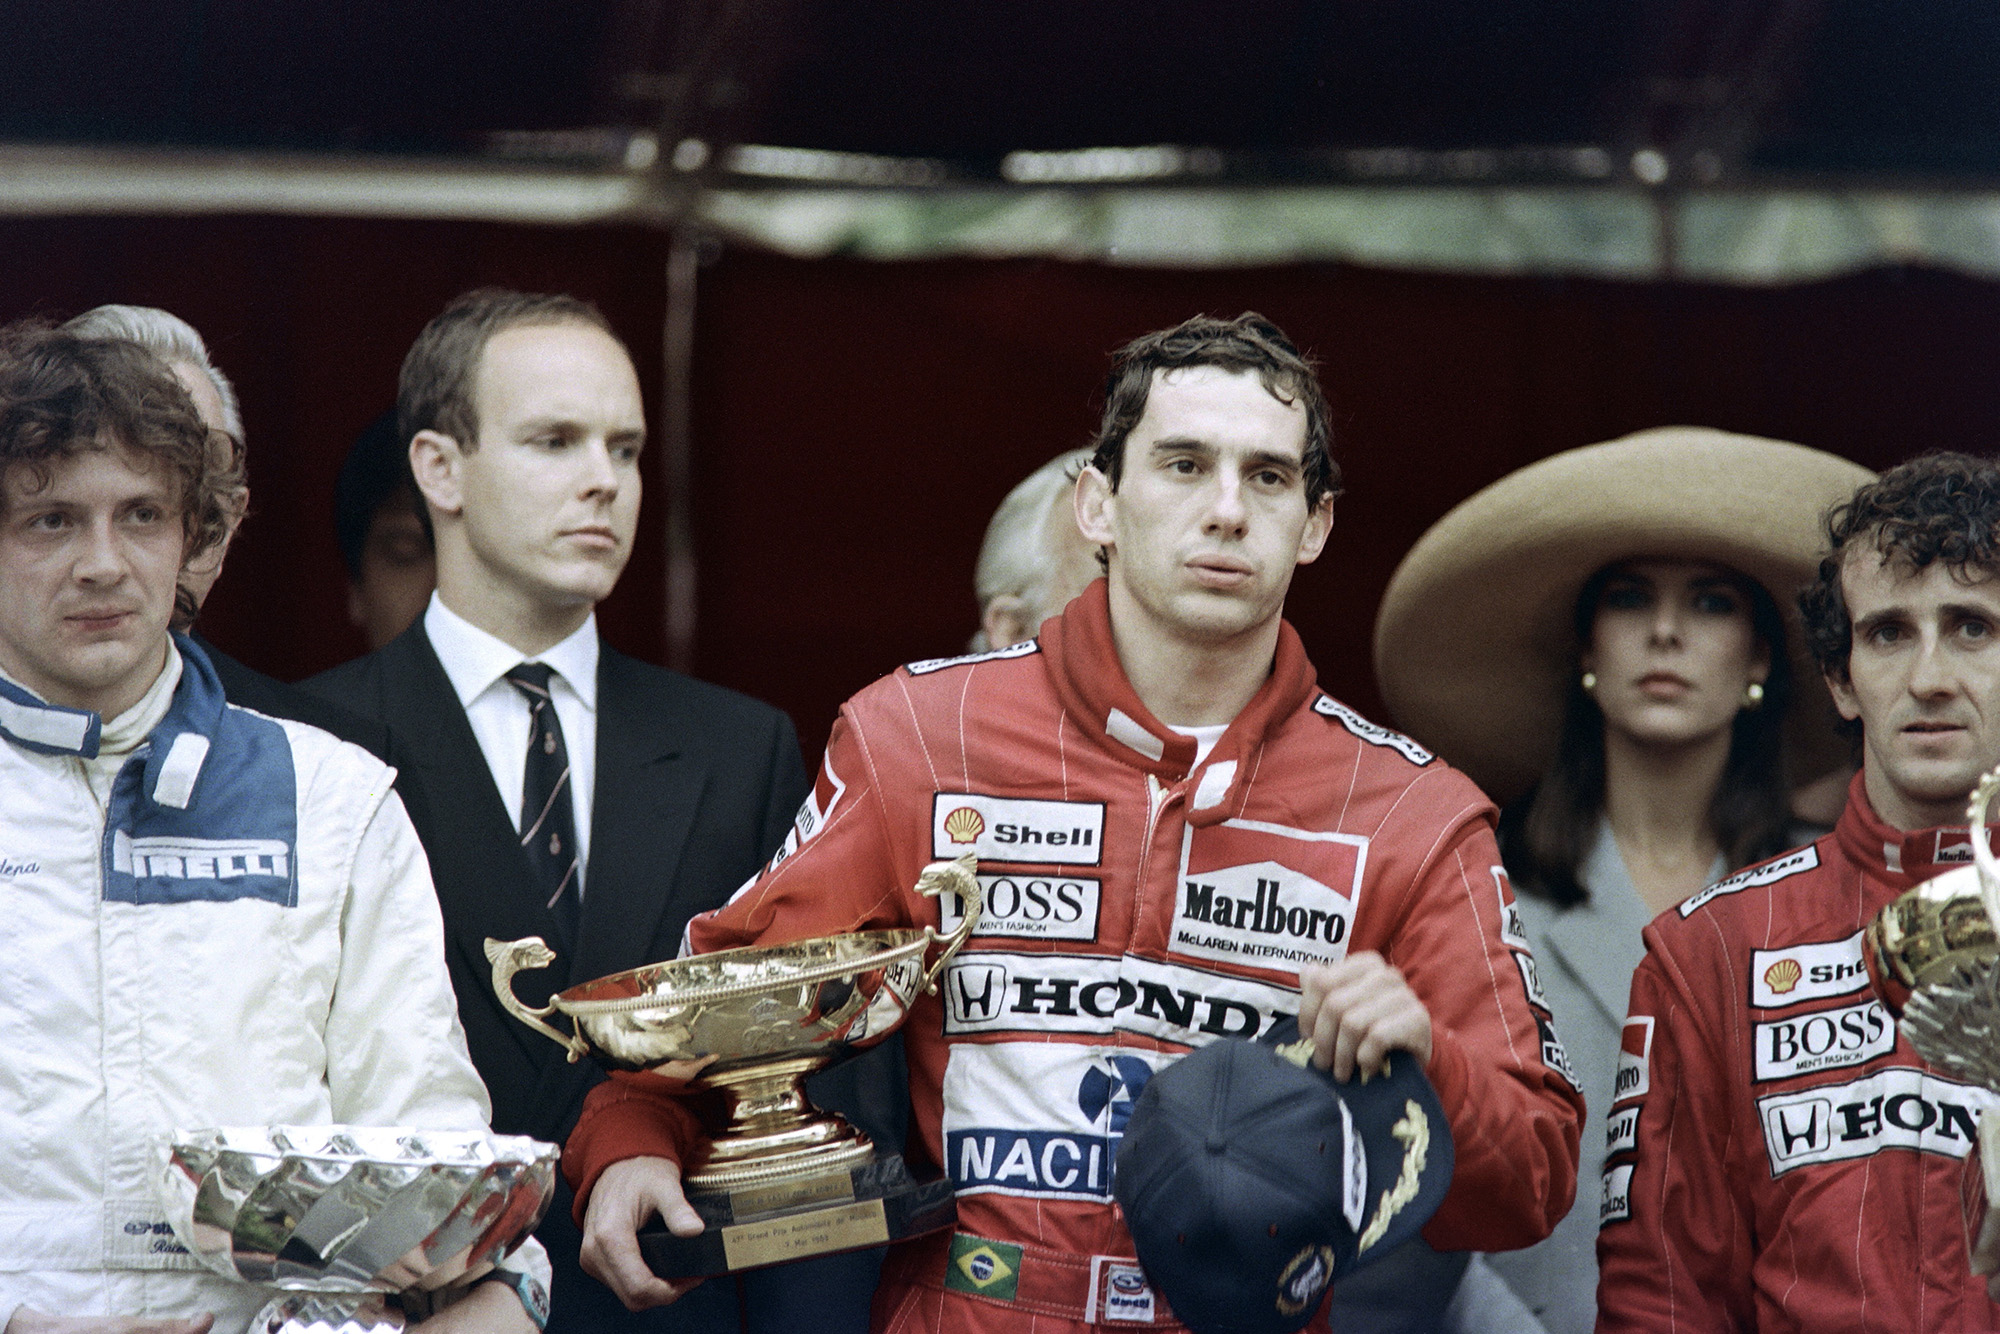 Ayrton Senna looks exhausted on the podium after winning the 1989 Monaco Grand Prix